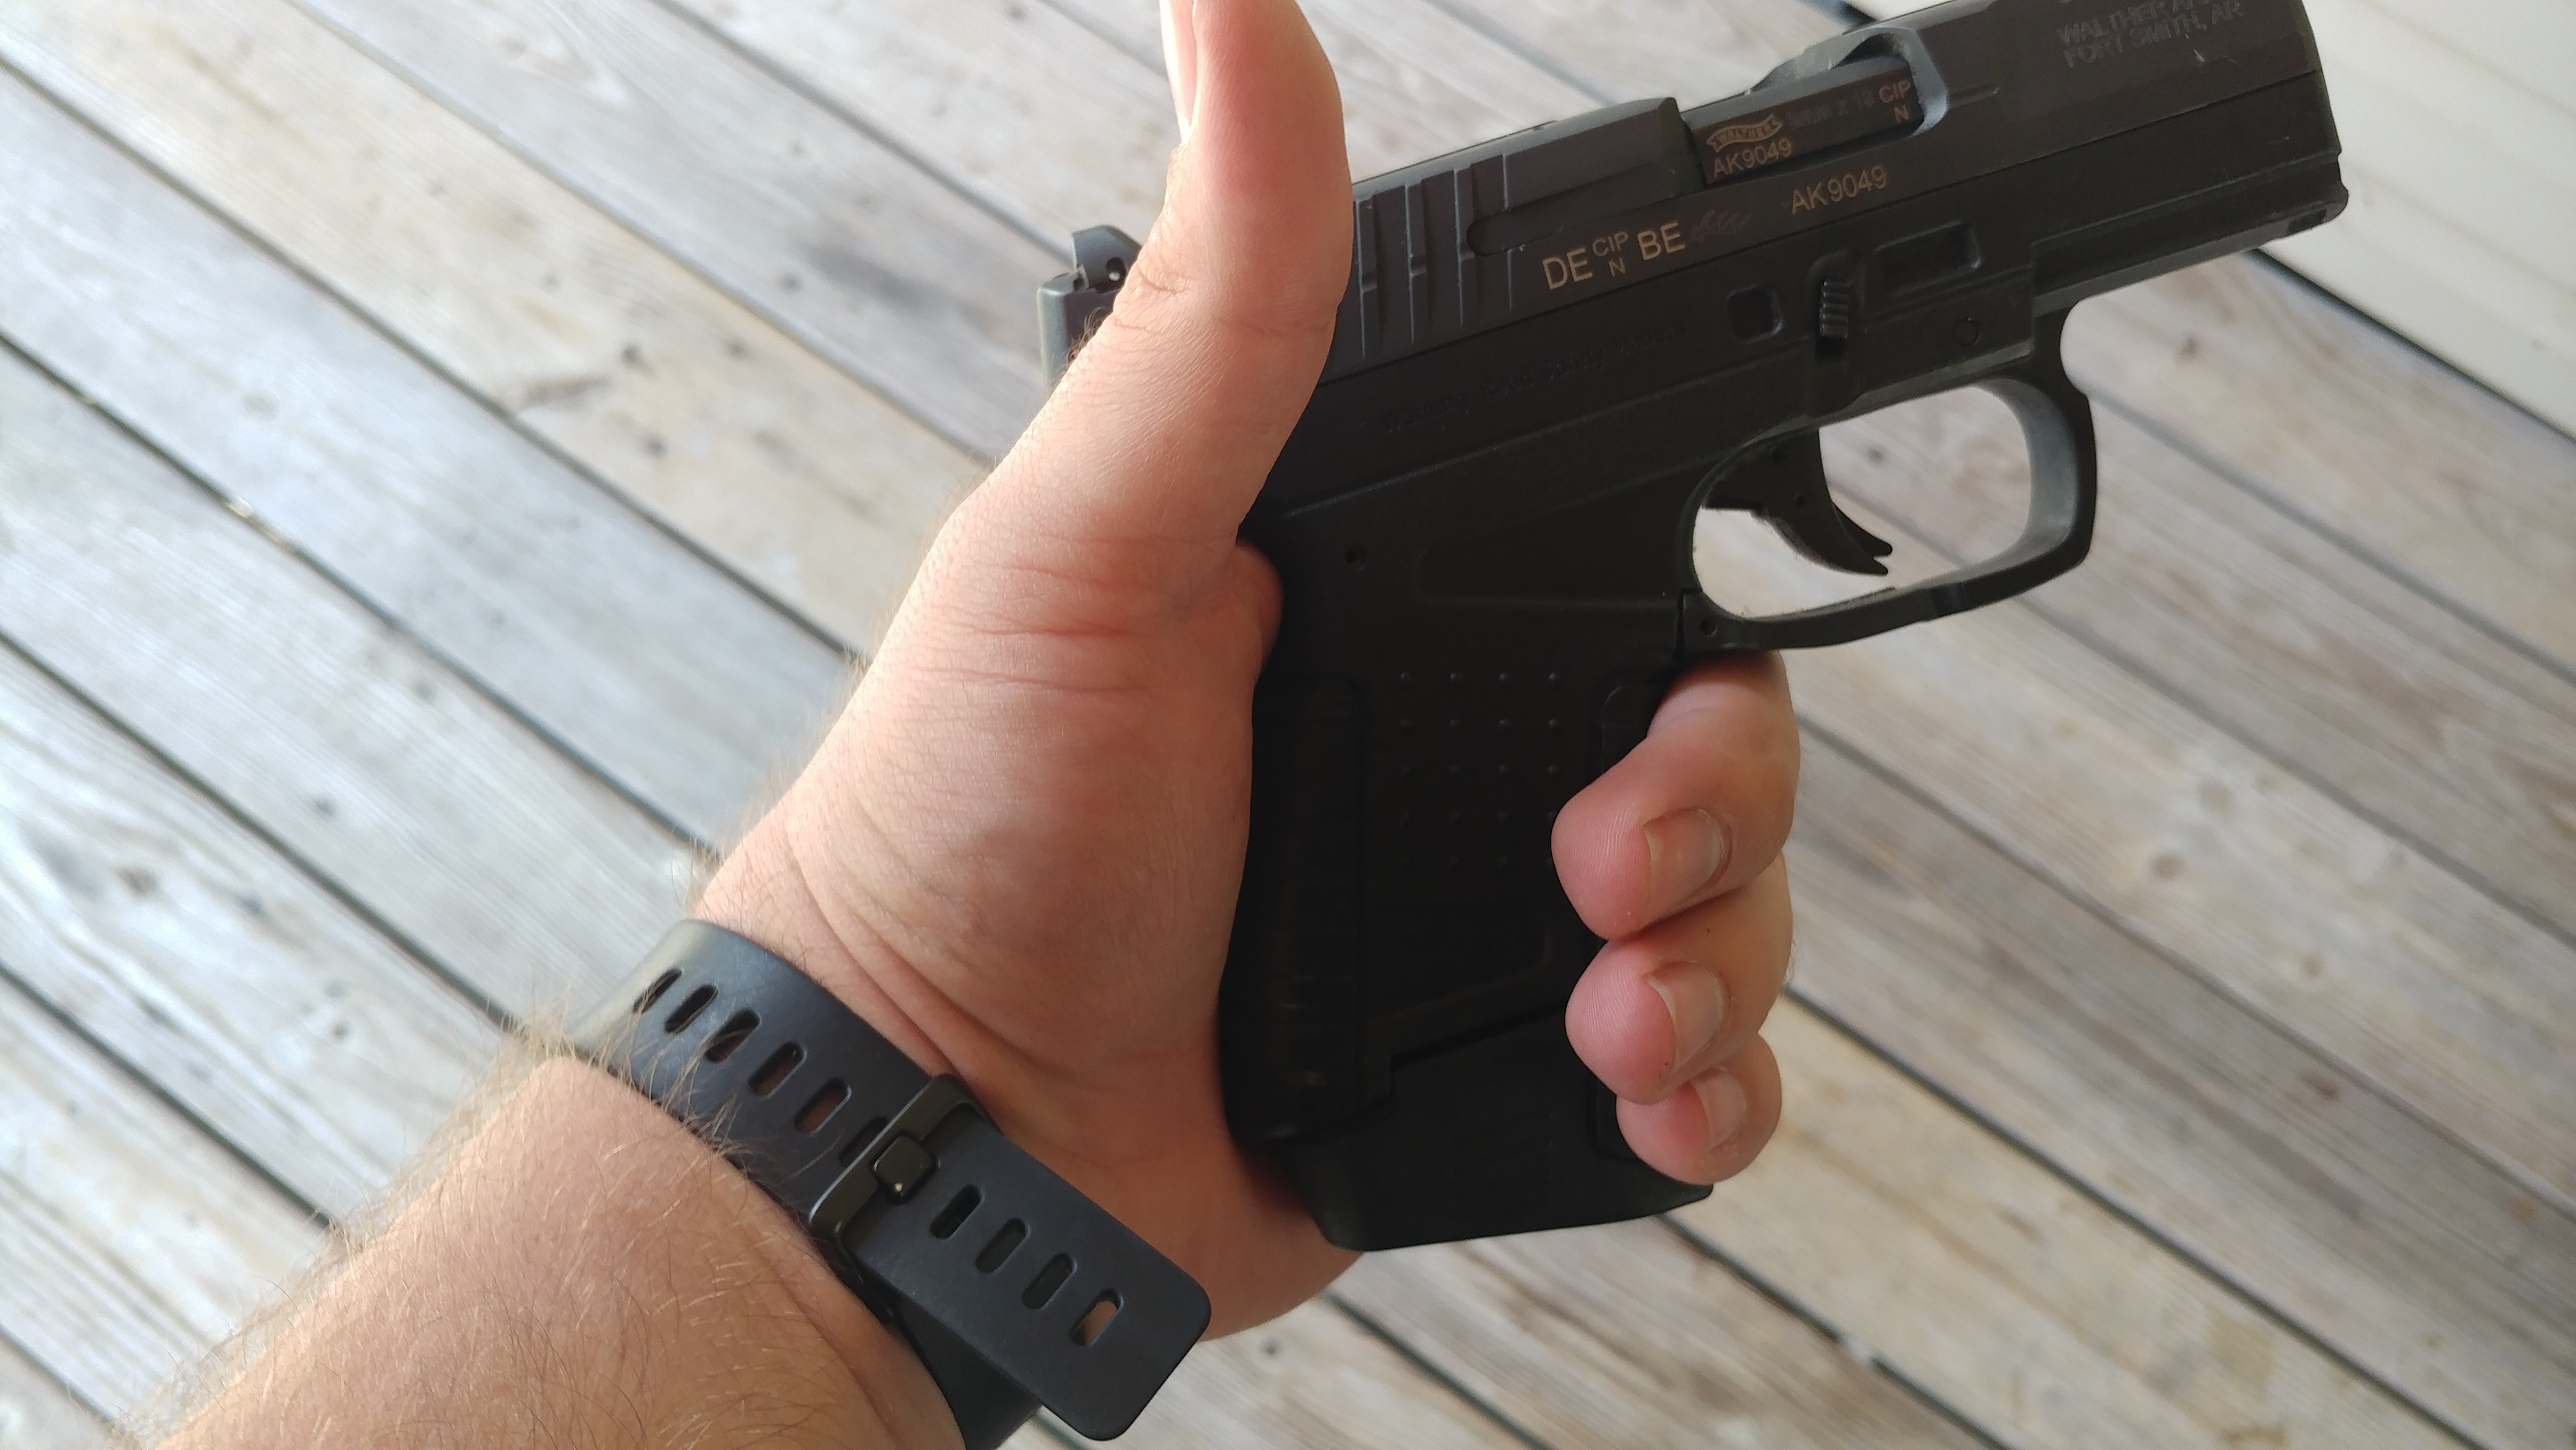 Walther, PPS, Walther PPS, James Bond, handgun, concealed carry, gun review, CrossBreed Holsters, Walther pistol, PPK, Walther Arms, Carl Walther, 9 MM, IWB, OWB, best holster, hybrid holster